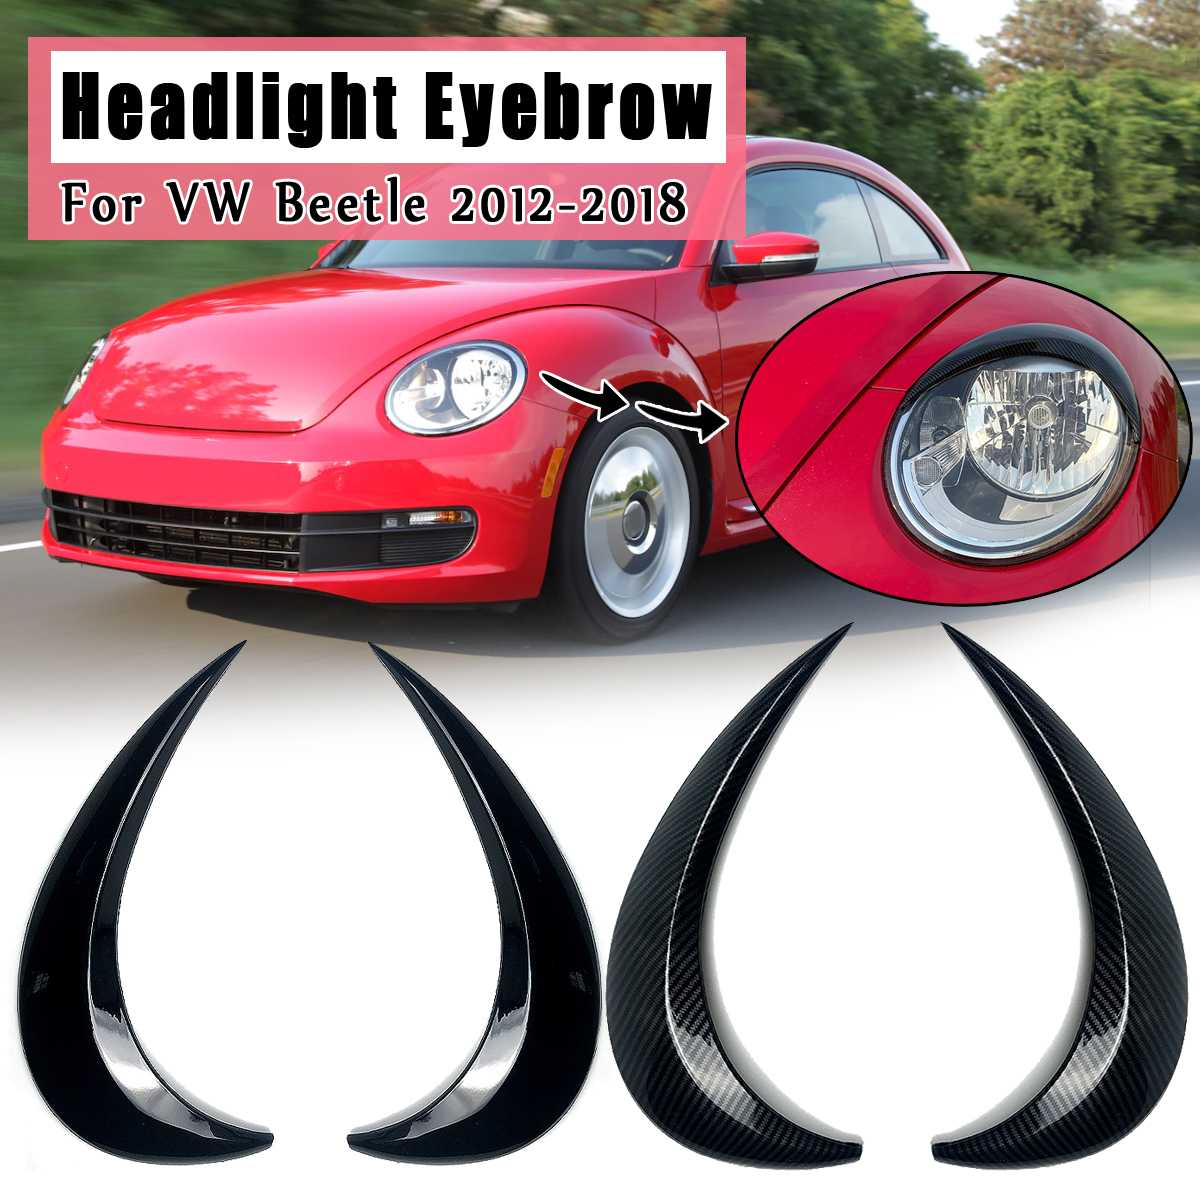 Car Headlight Eyebrow Eyelids ABS Stickers Trim Cover For VW for Beetle 2012 2013 2014 2015 2016 17 2018 Car styling Accessories